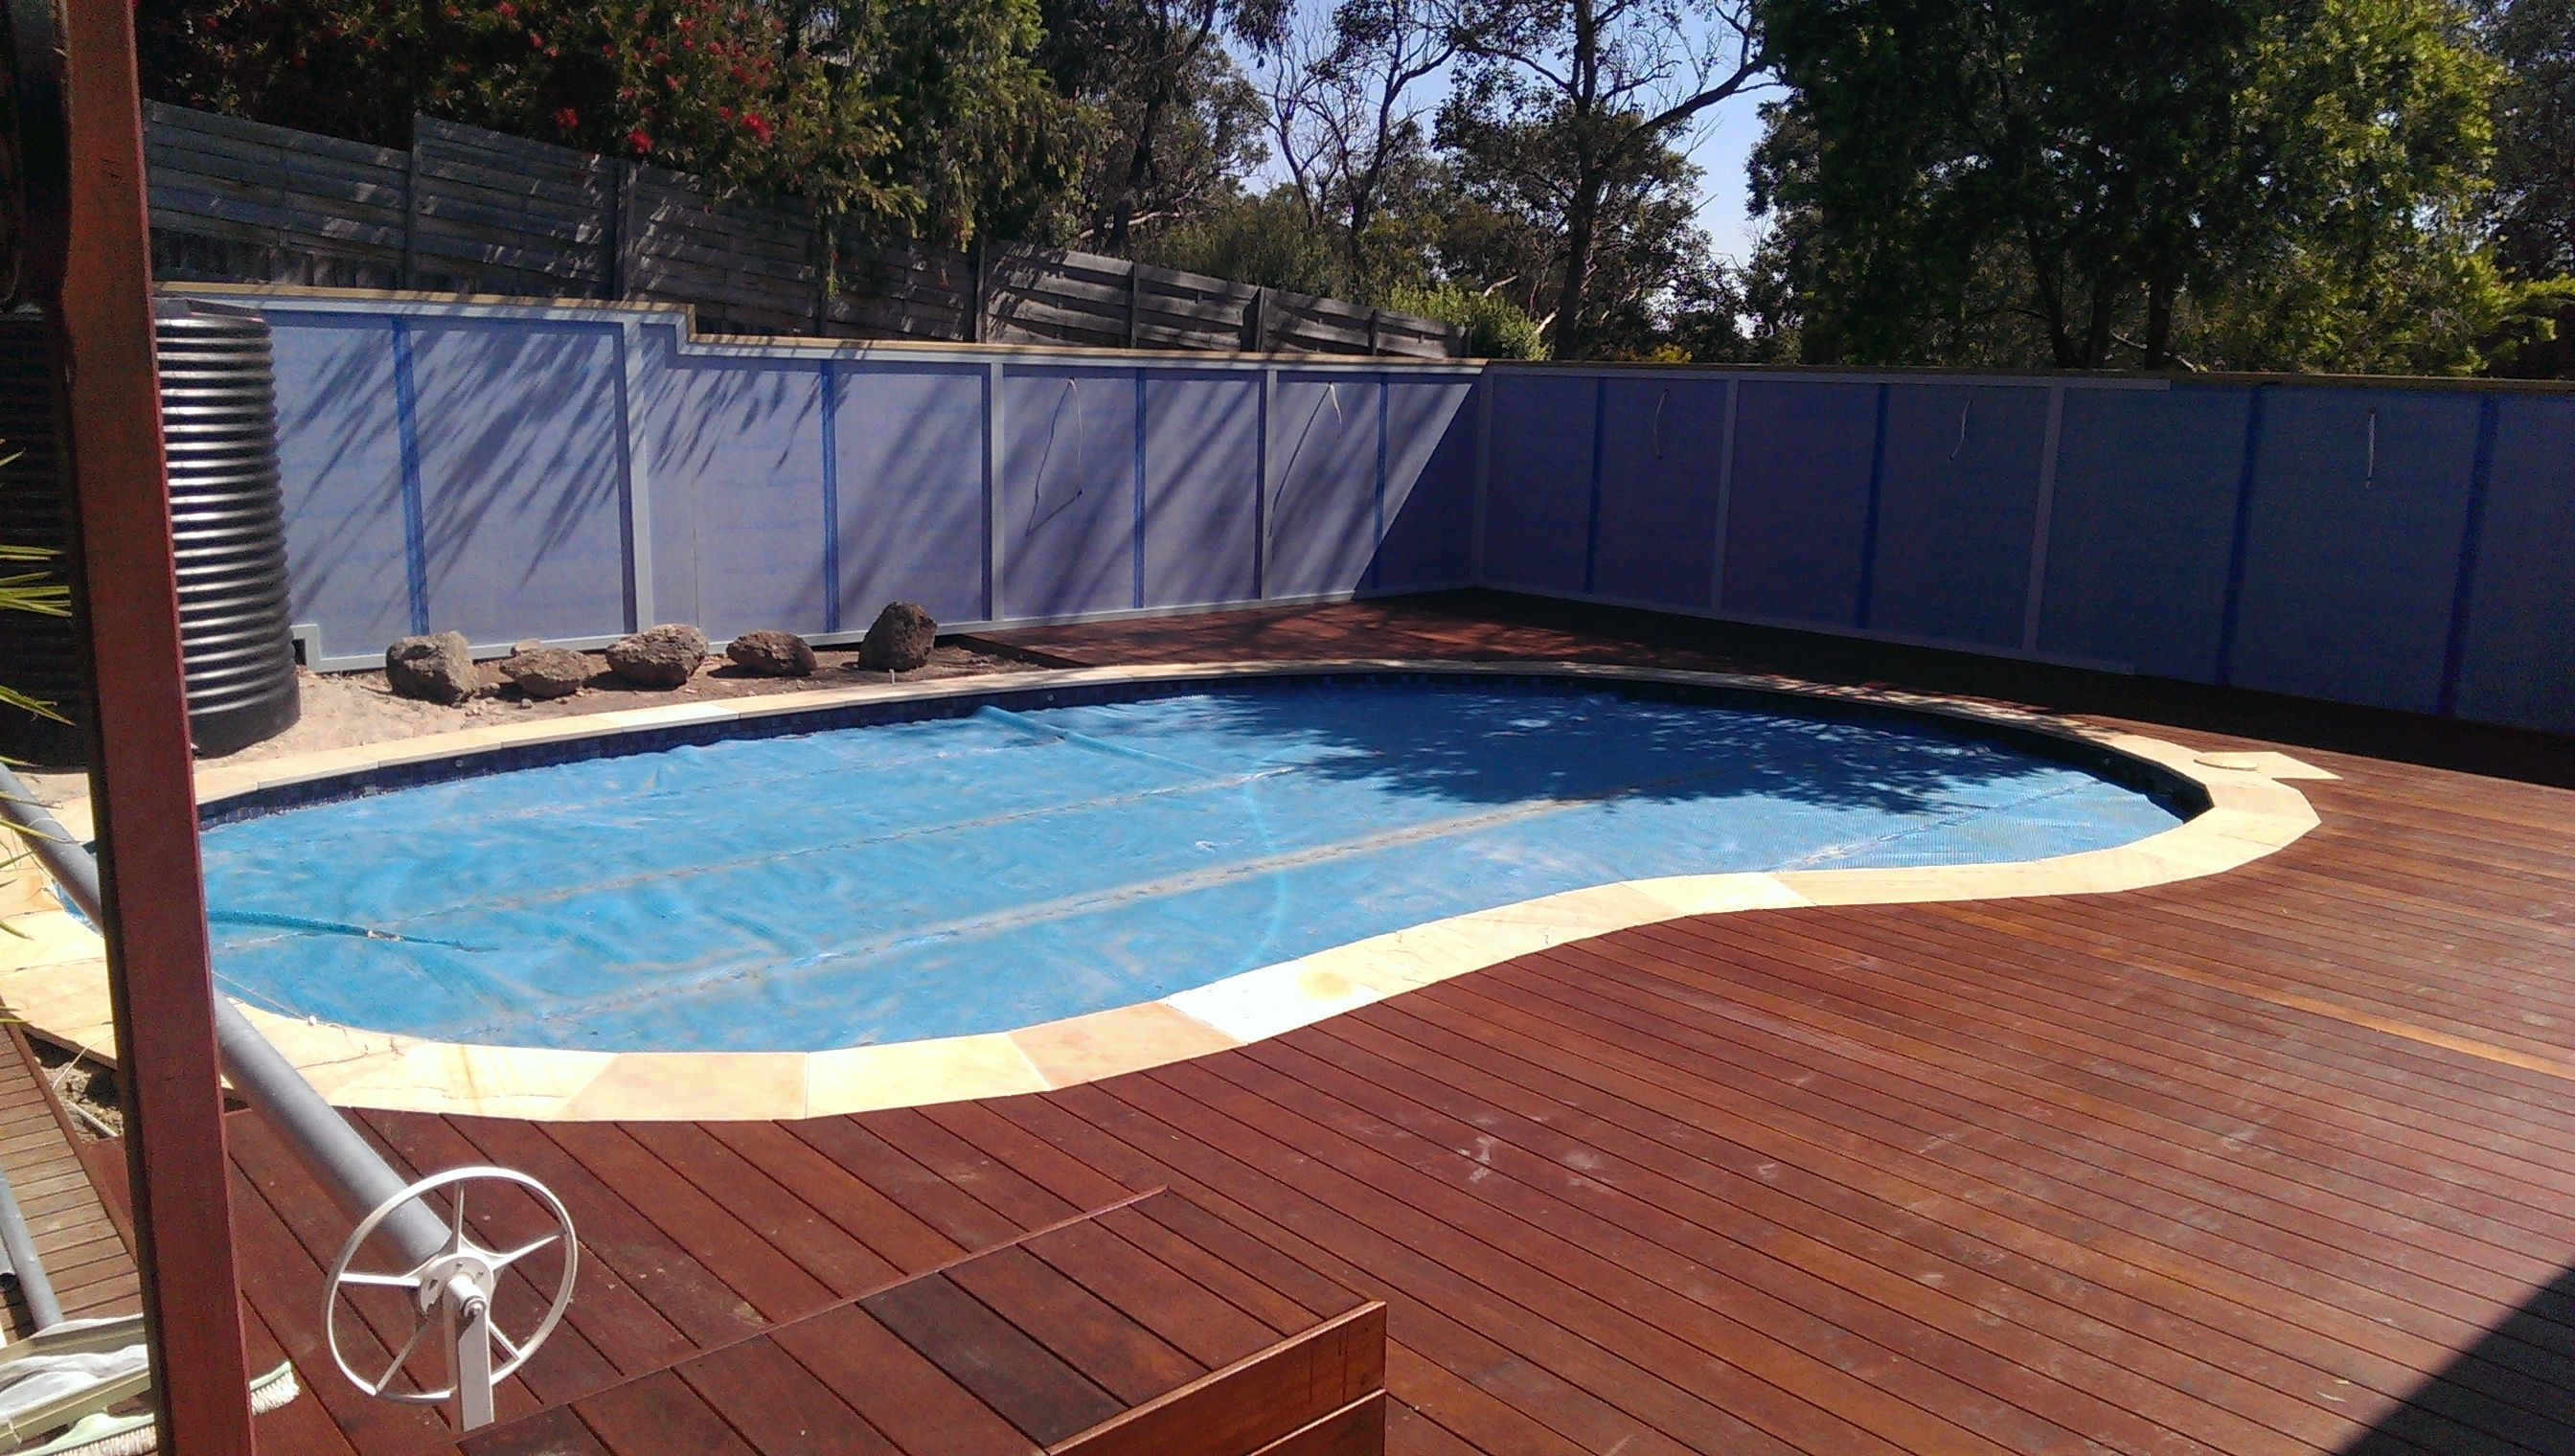 Premium Alfresco Project In Eltham Vic Includes Renovation Of A Partial Inground Pool Featuring